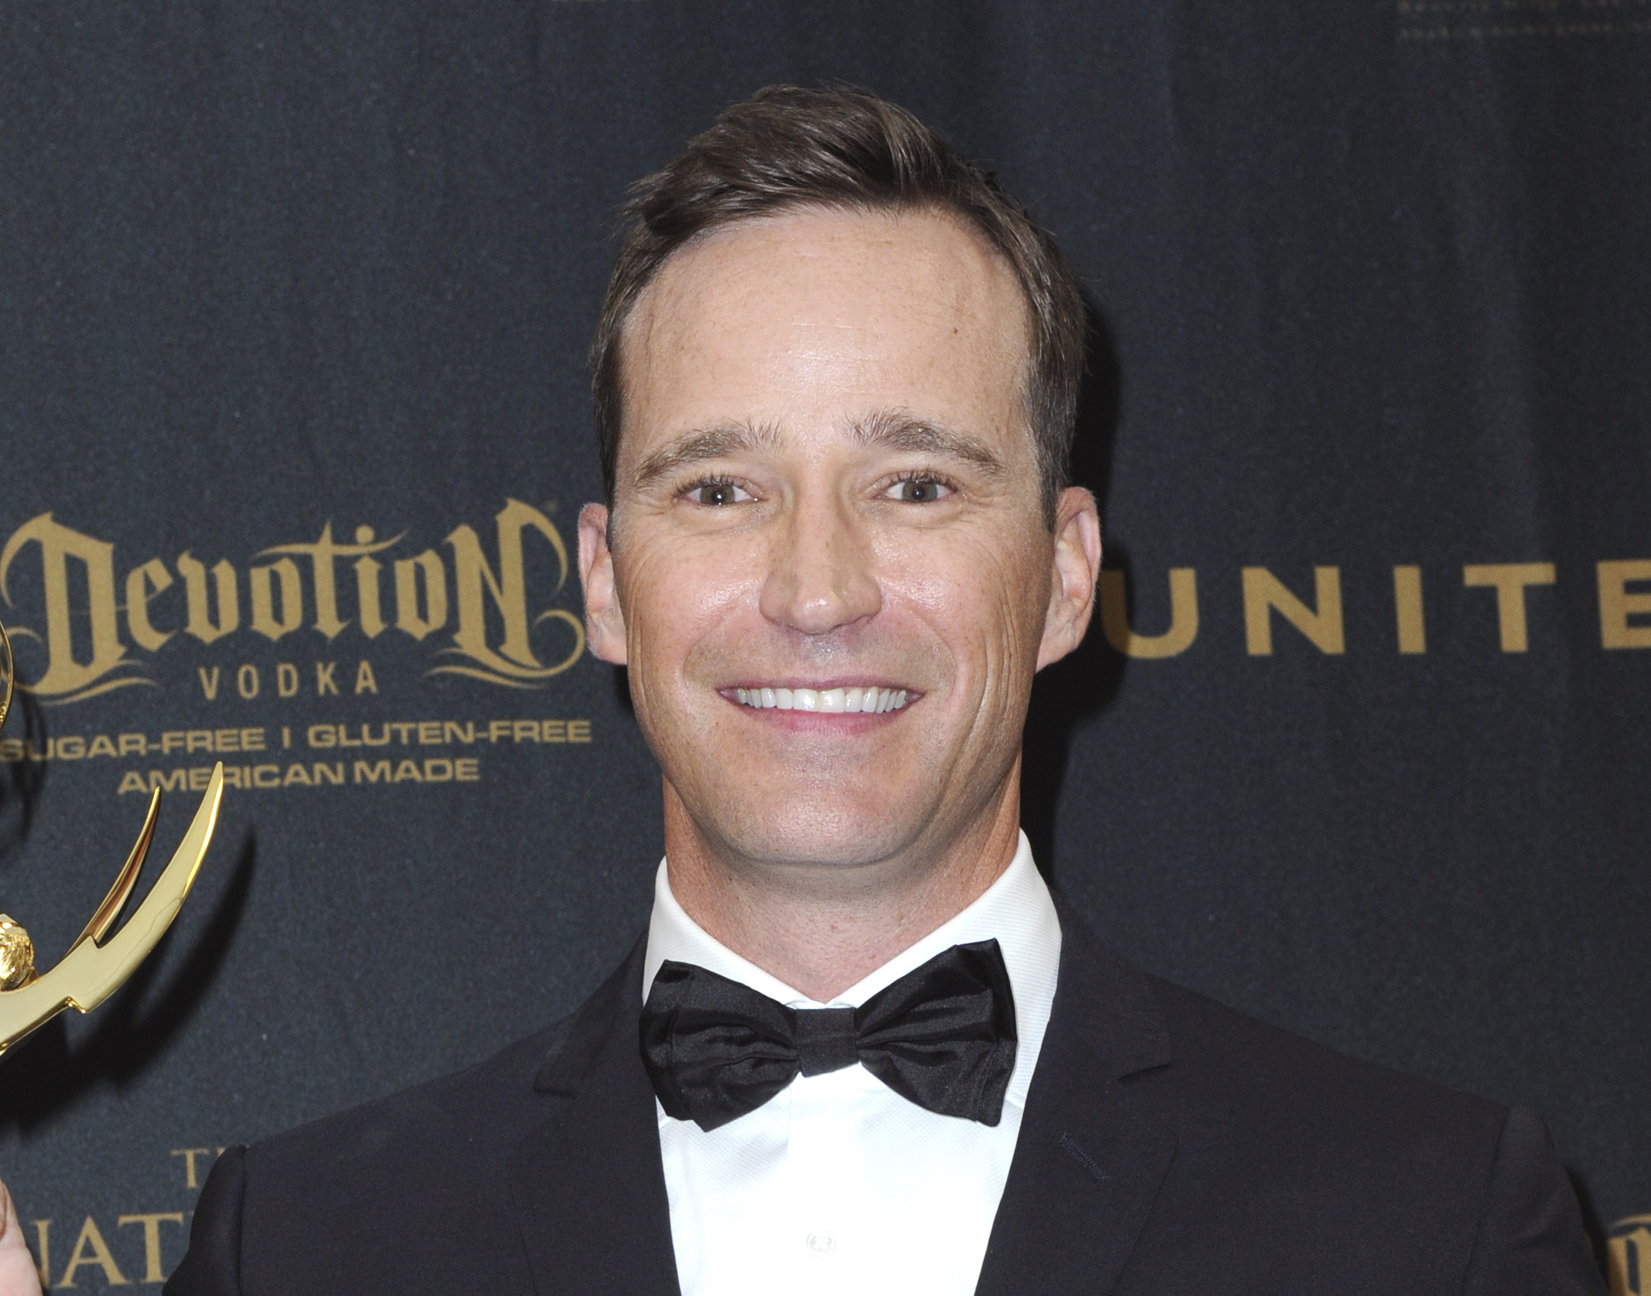 """Producer Mike Richards poses in the pressroom at the 43rd annual Daytime Emmy Awards on May 1, 2016, in Los Angeles. Richards is out as executive producer of """"Jeopardy!"""", days after he exited as the quiz show's newly appointed host because of past misogynistic and other comments. Richards is also no longer executive producer of """"Wheel of Fortune."""" (Photo by Richard Shotwell/Invision/AP, File)"""